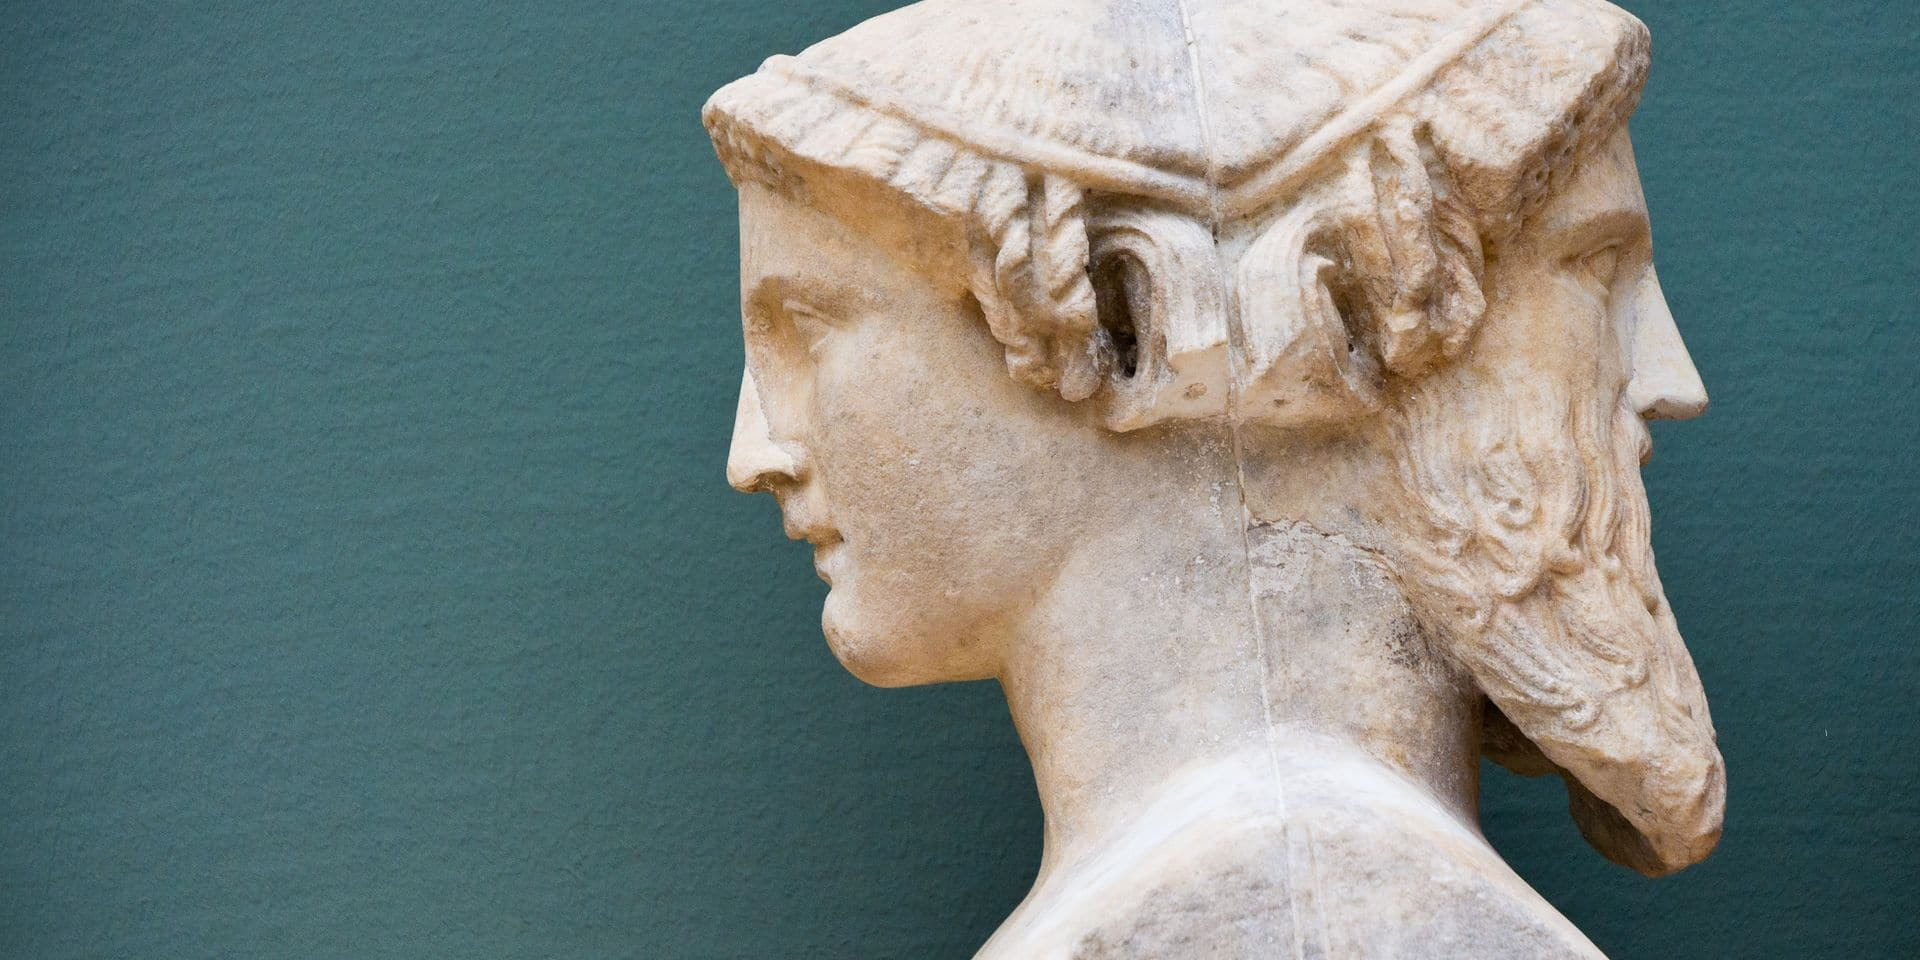 Two,Faces,Of,A,Person,-,Historical,Sculpture